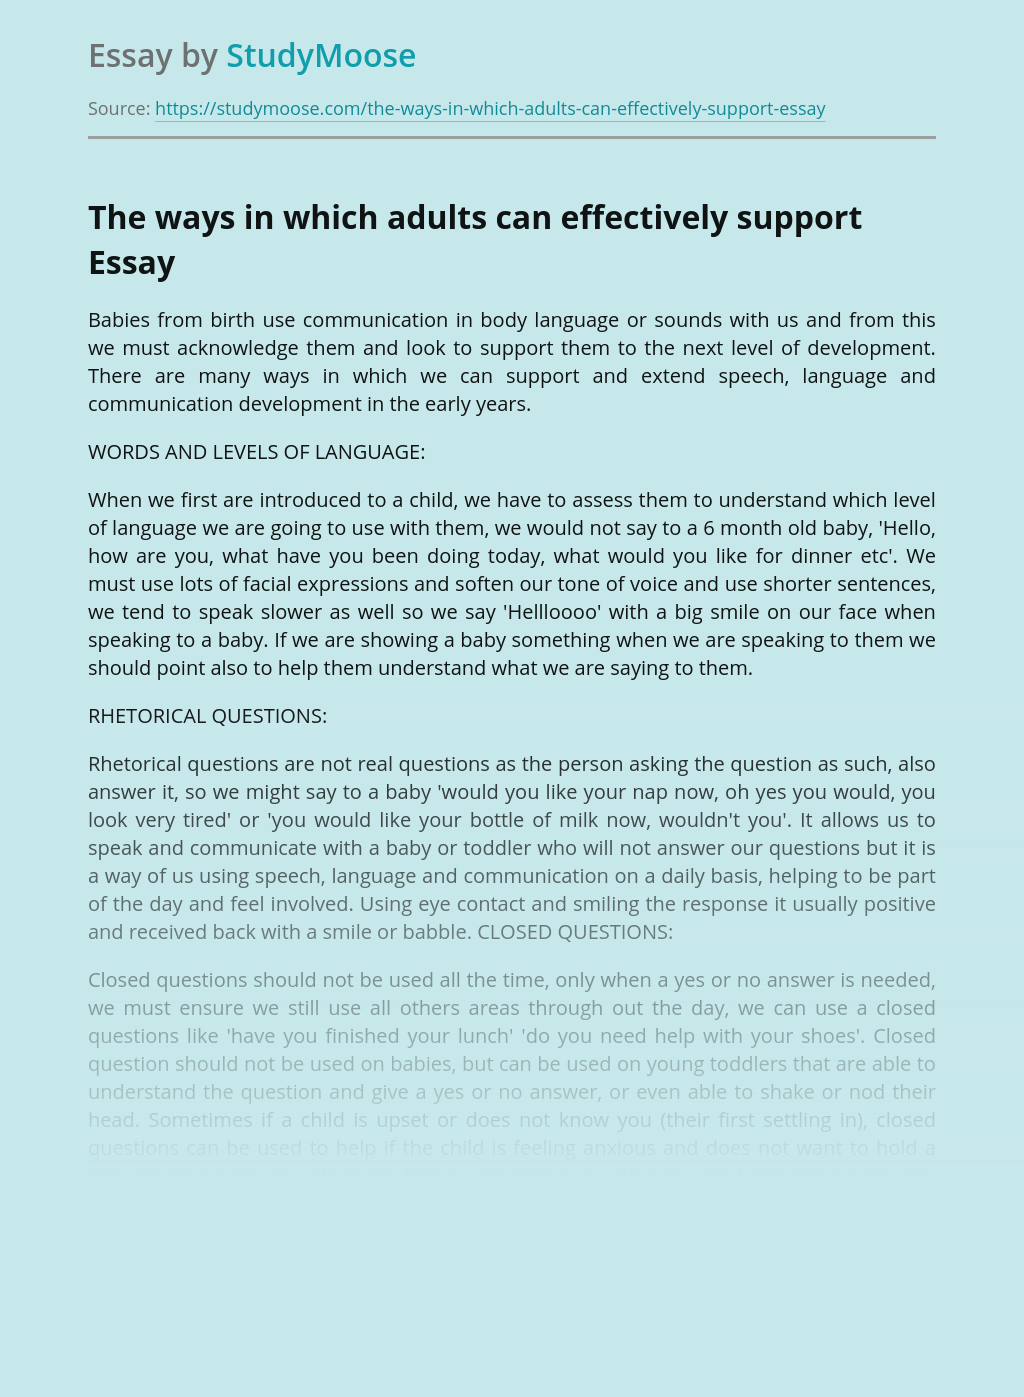 The ways in which adults can effectively support